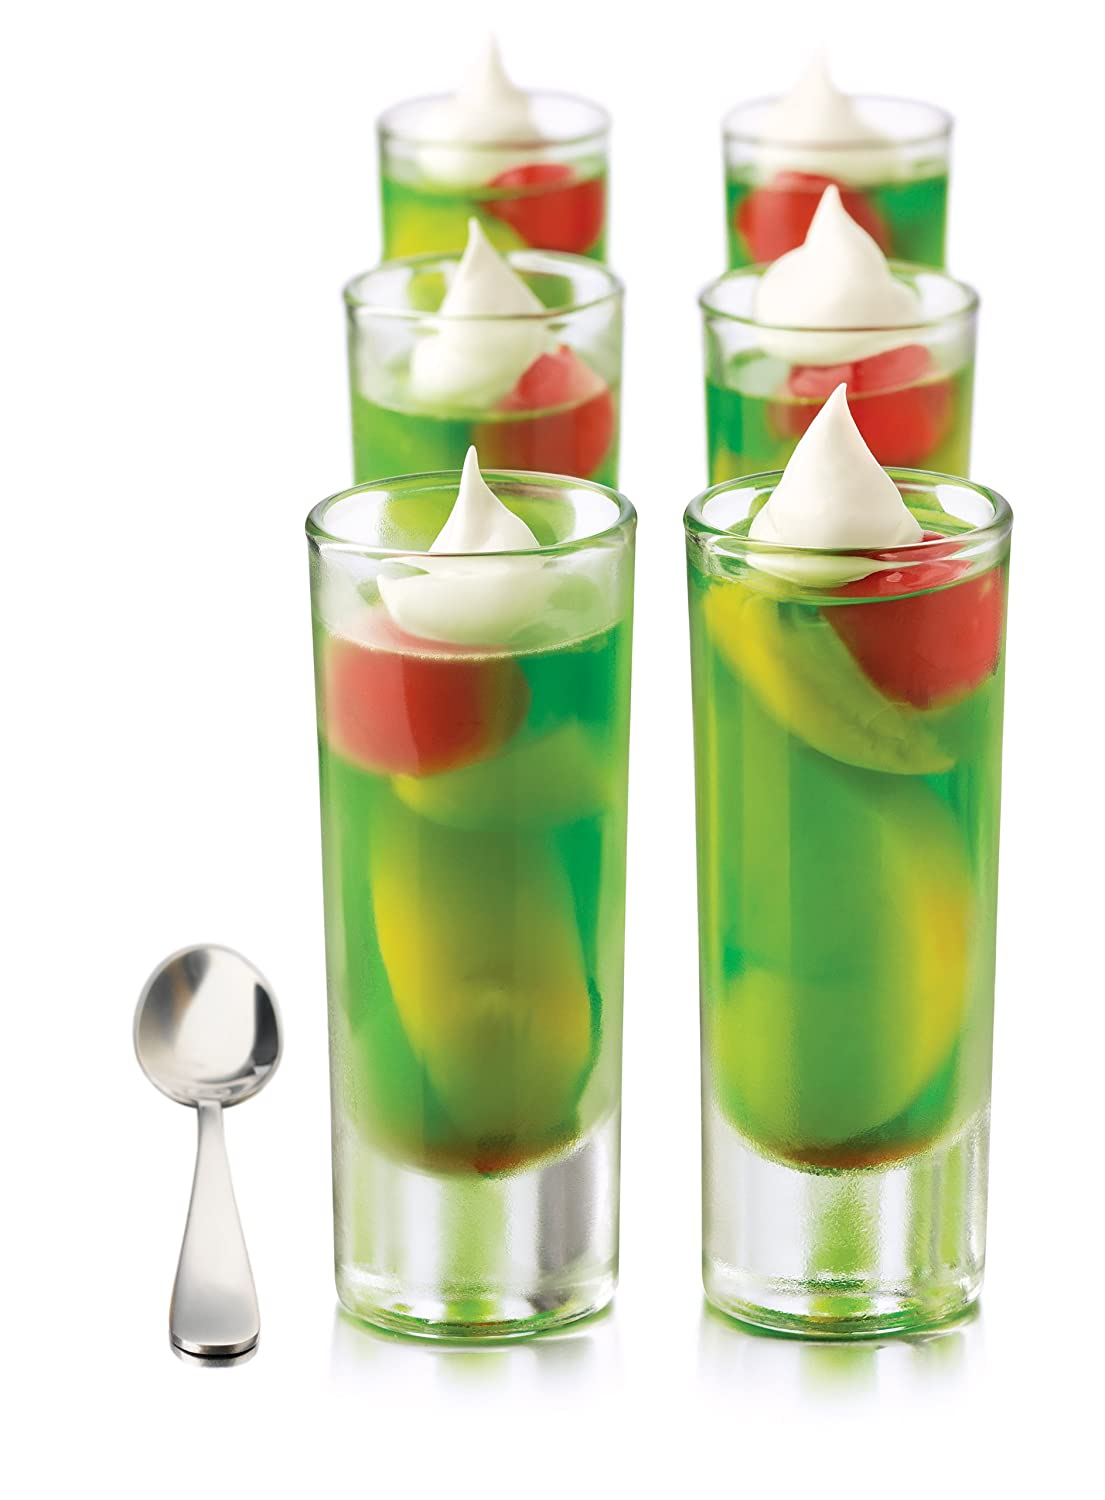 Libbey Just Desserts Parfait Glass With Minaiture Stainless Steel Spoon 25-piece Libreria Venus Inc 1650YS12